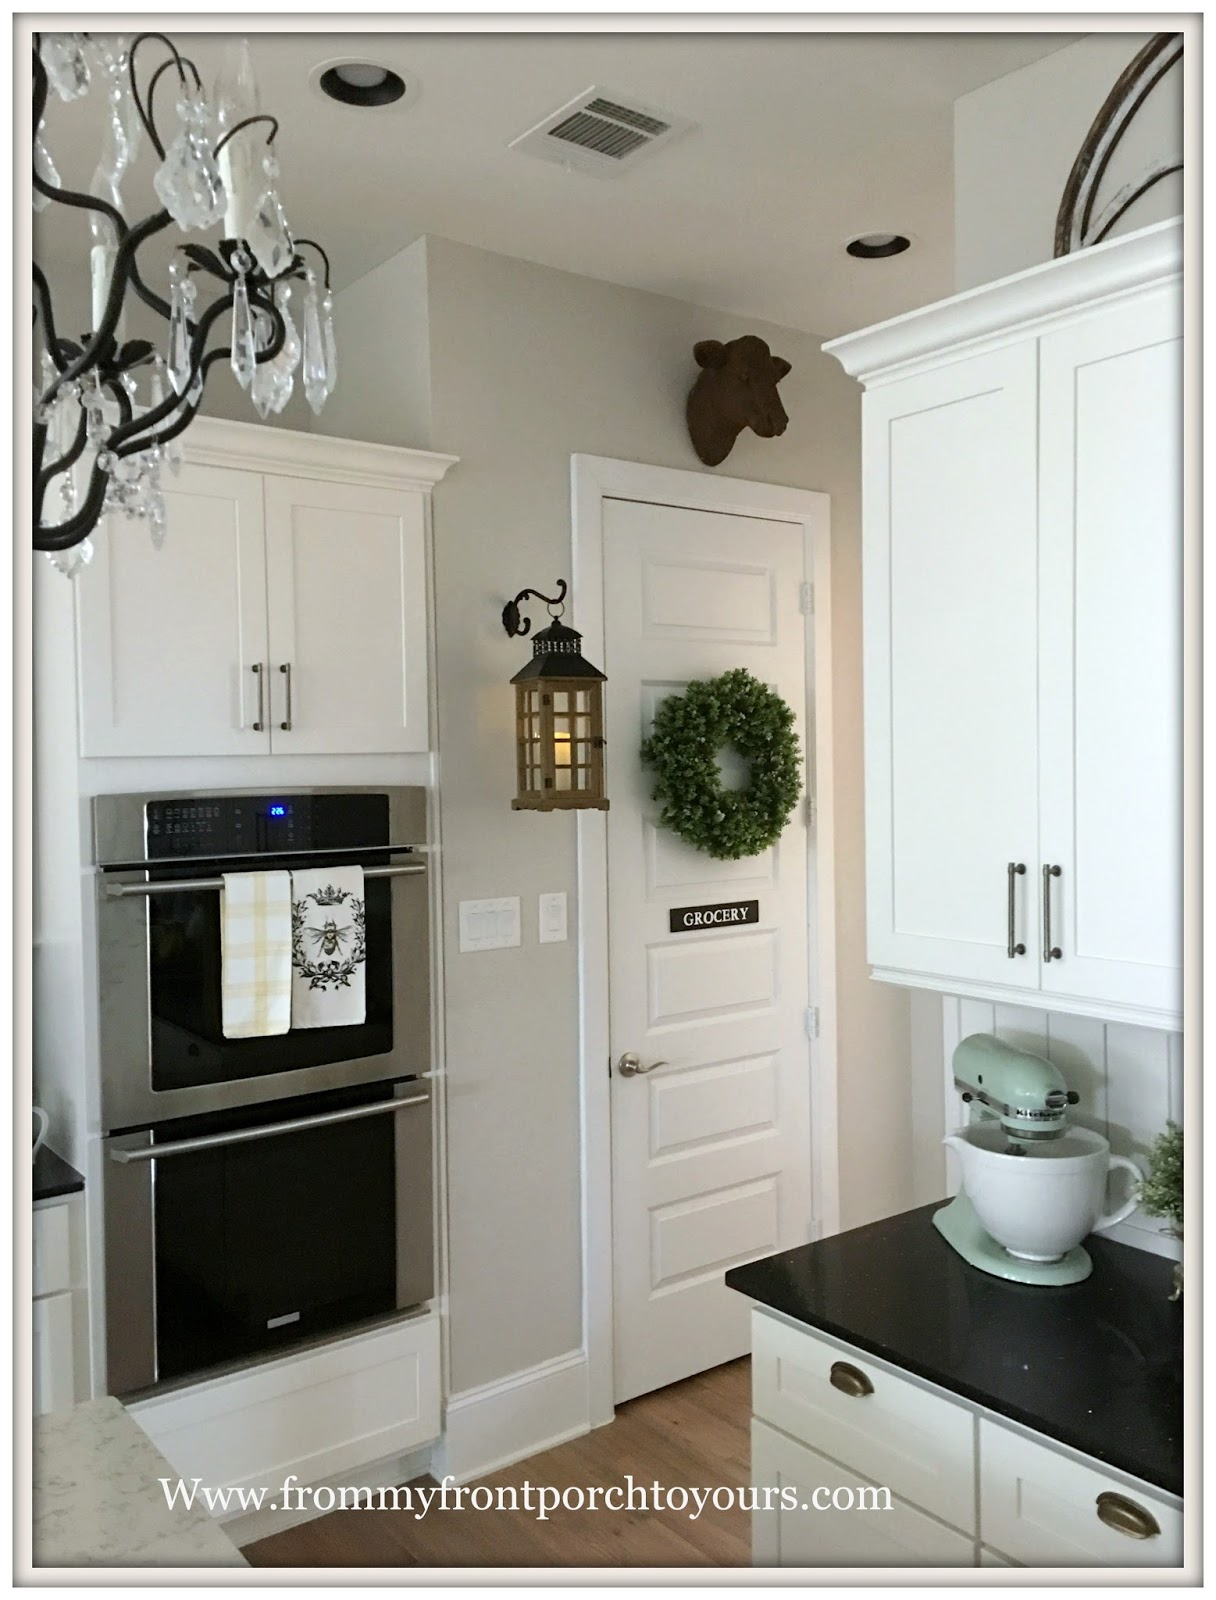 French Country-French Farmhouse-Farmhouse Kitchen-Cottage Kitchen-Cottage Style-Hanging : farmhouse door - pezcame.com